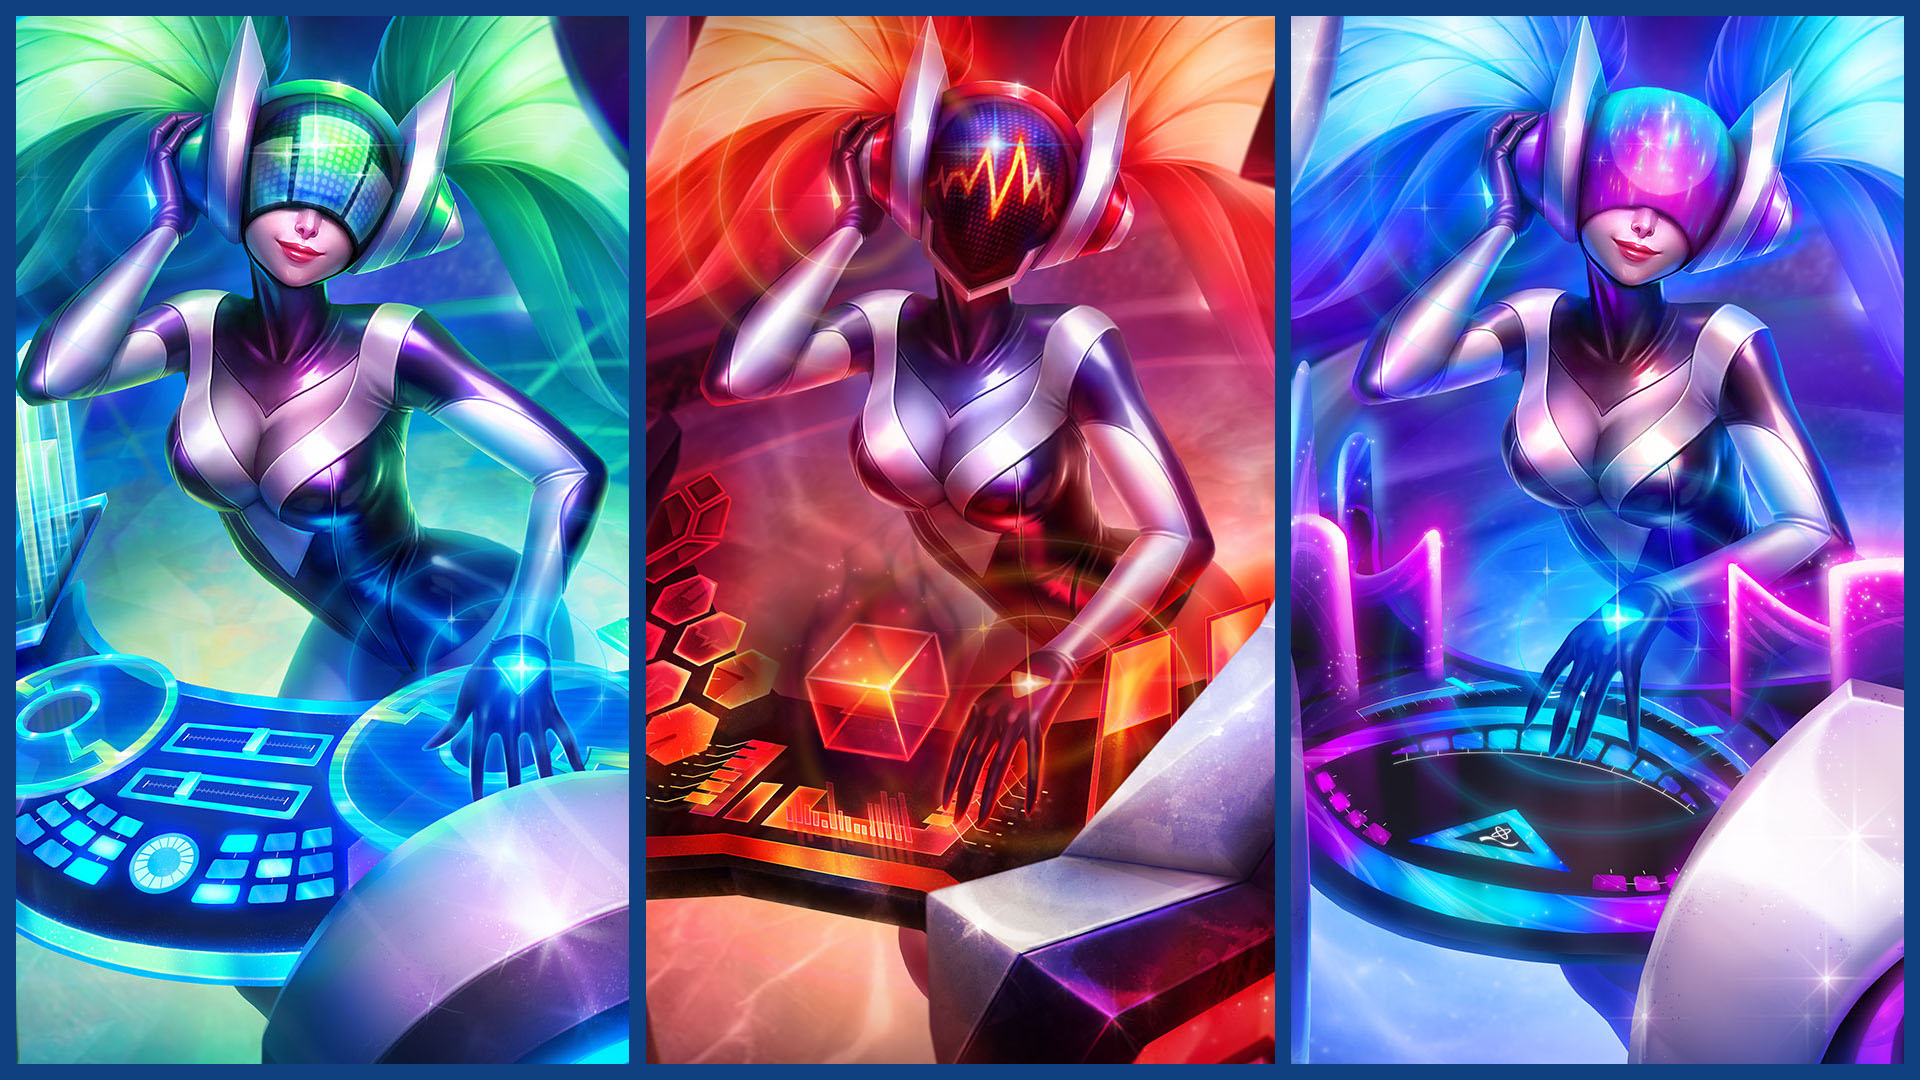 Dj Sona, Ultimate skin